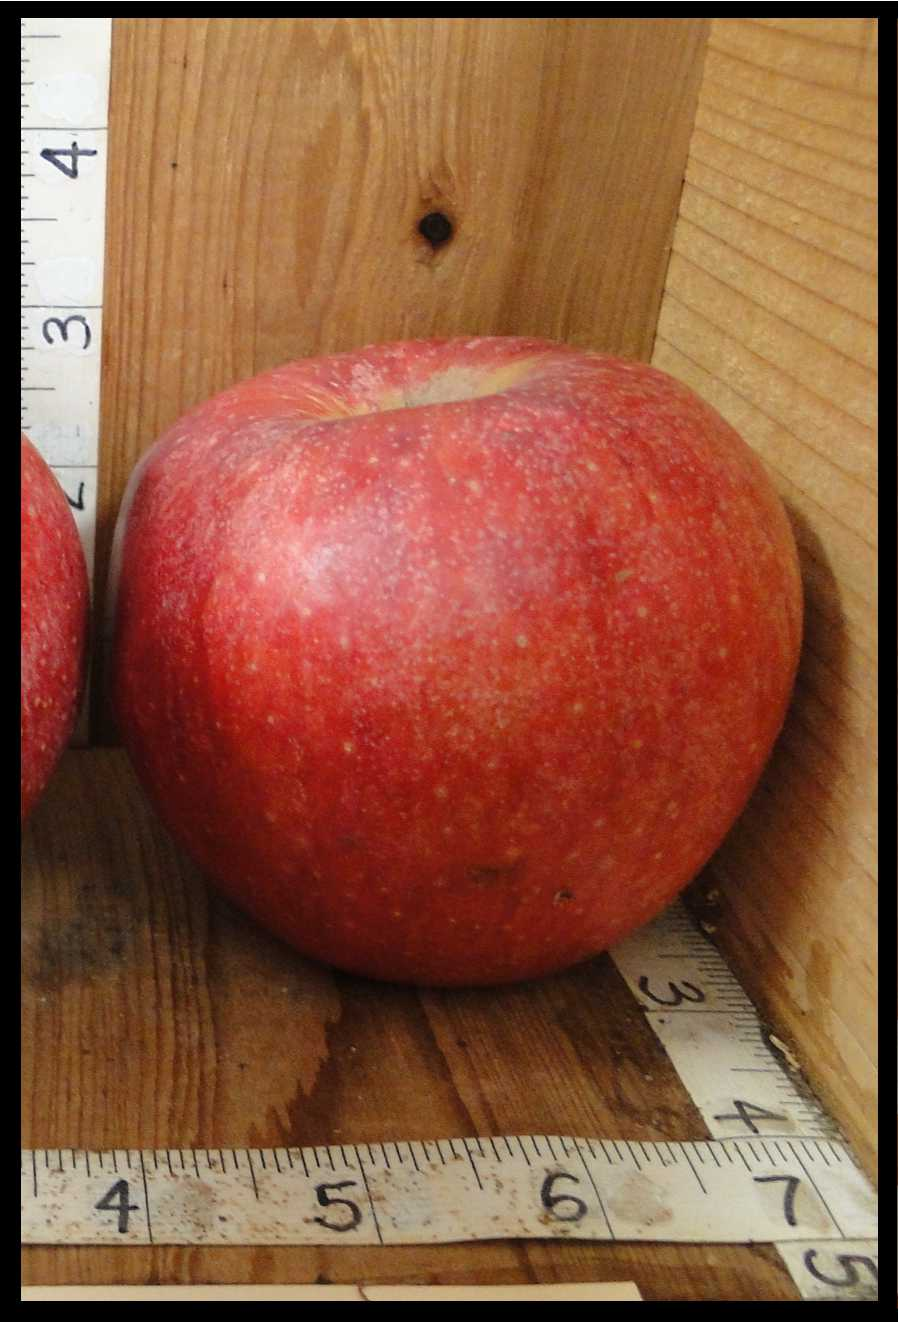 apple with rough red skin and numerous tiny yellow dots